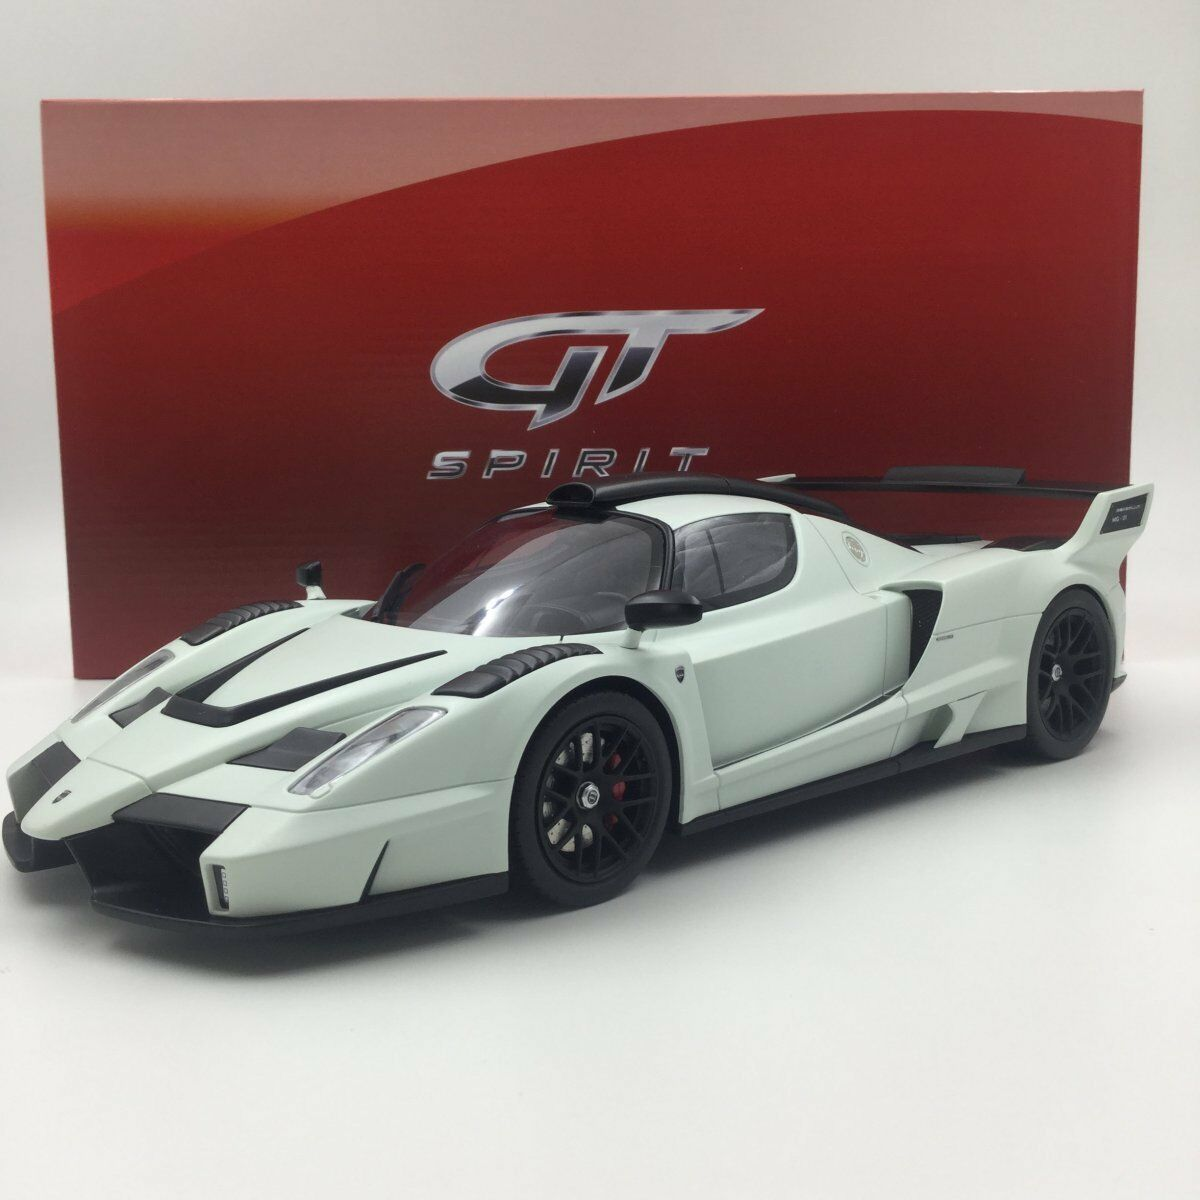 Resin Car Model GT Spirit Ferrari Gemballa MIG-U1 1 18 (White) + GIFT